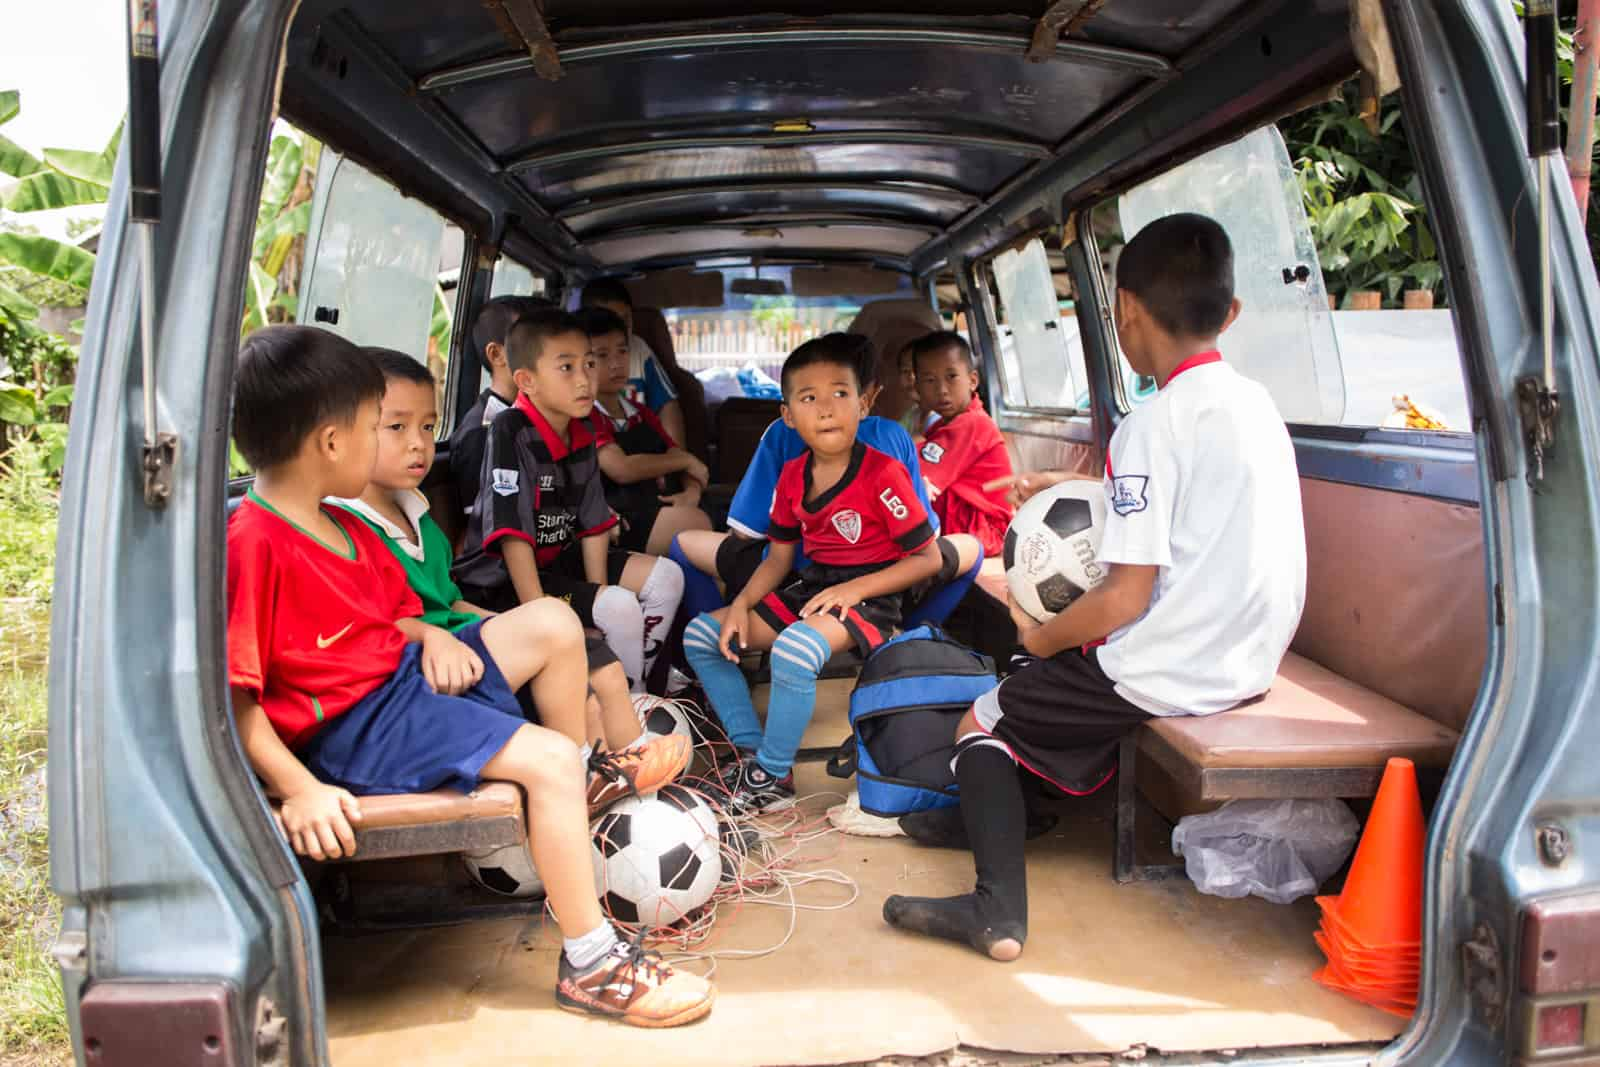 How This Church Is Winning the Fight Against the Sex Trade in Thailand With Soccer